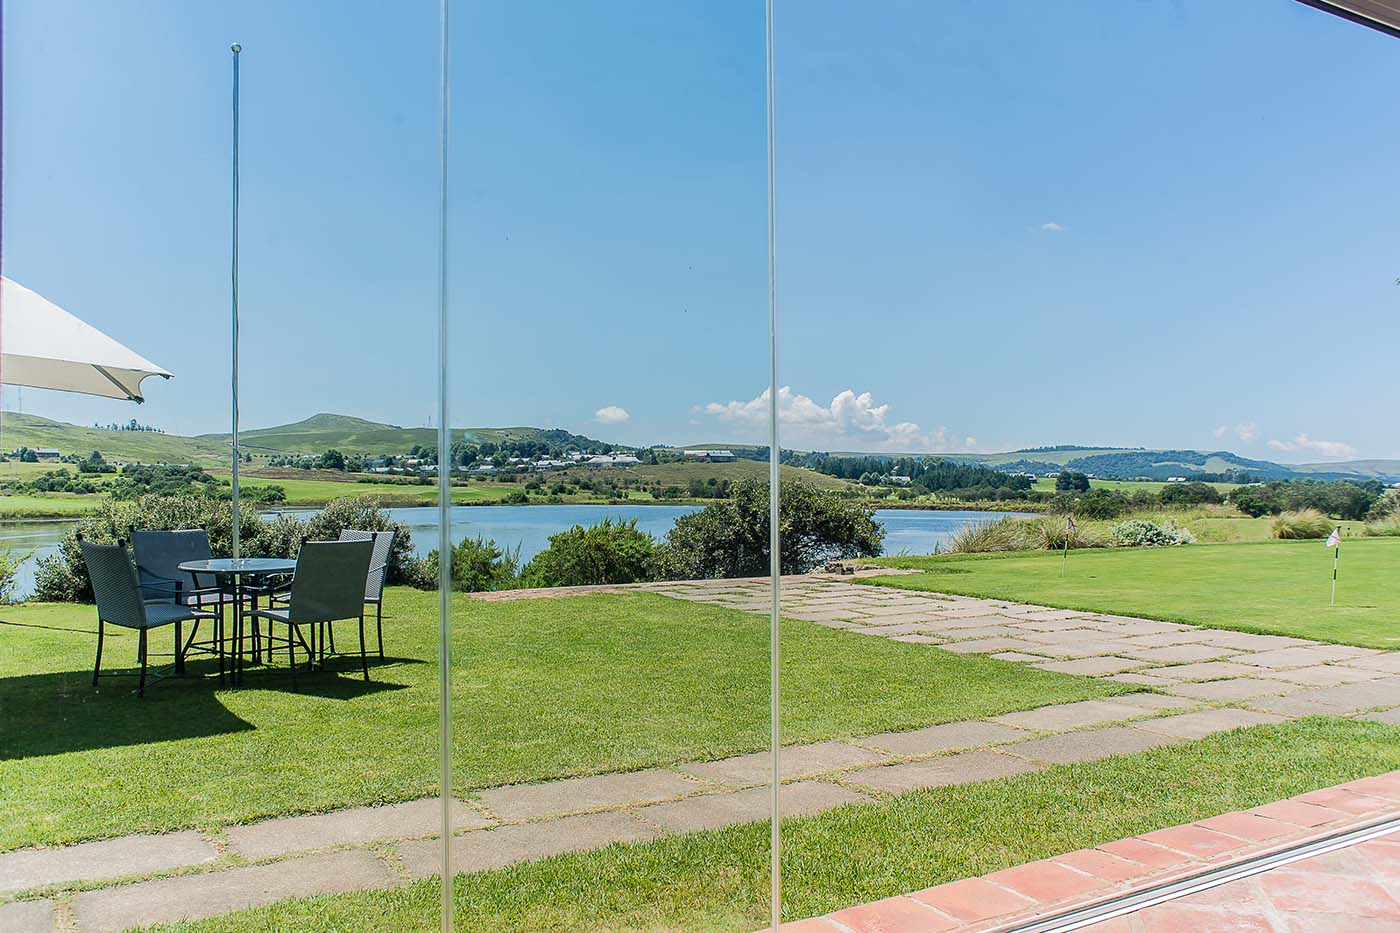 gowrie-club-house-gallery-golf-lodge-property-midlands-drakensberg-kzn-retreat-luxury-country-lifestyle